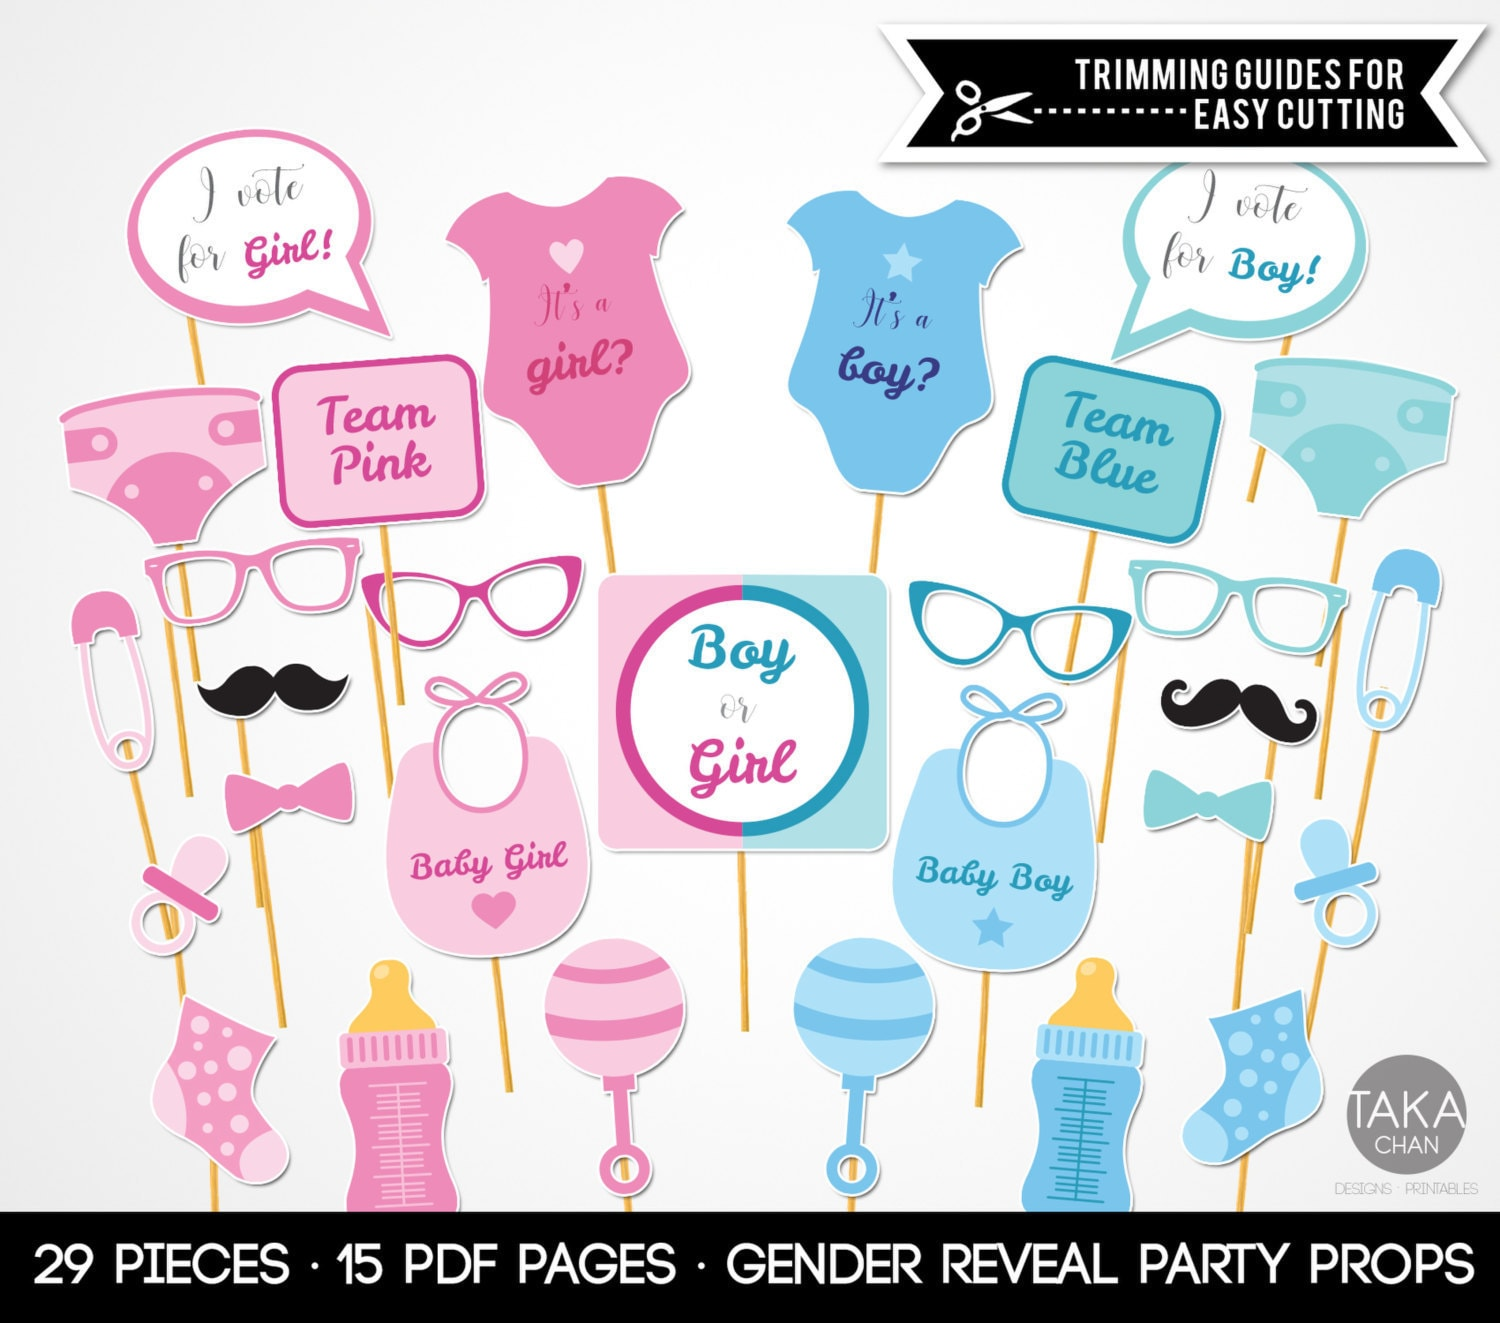 Delicate image with gender reveal printable